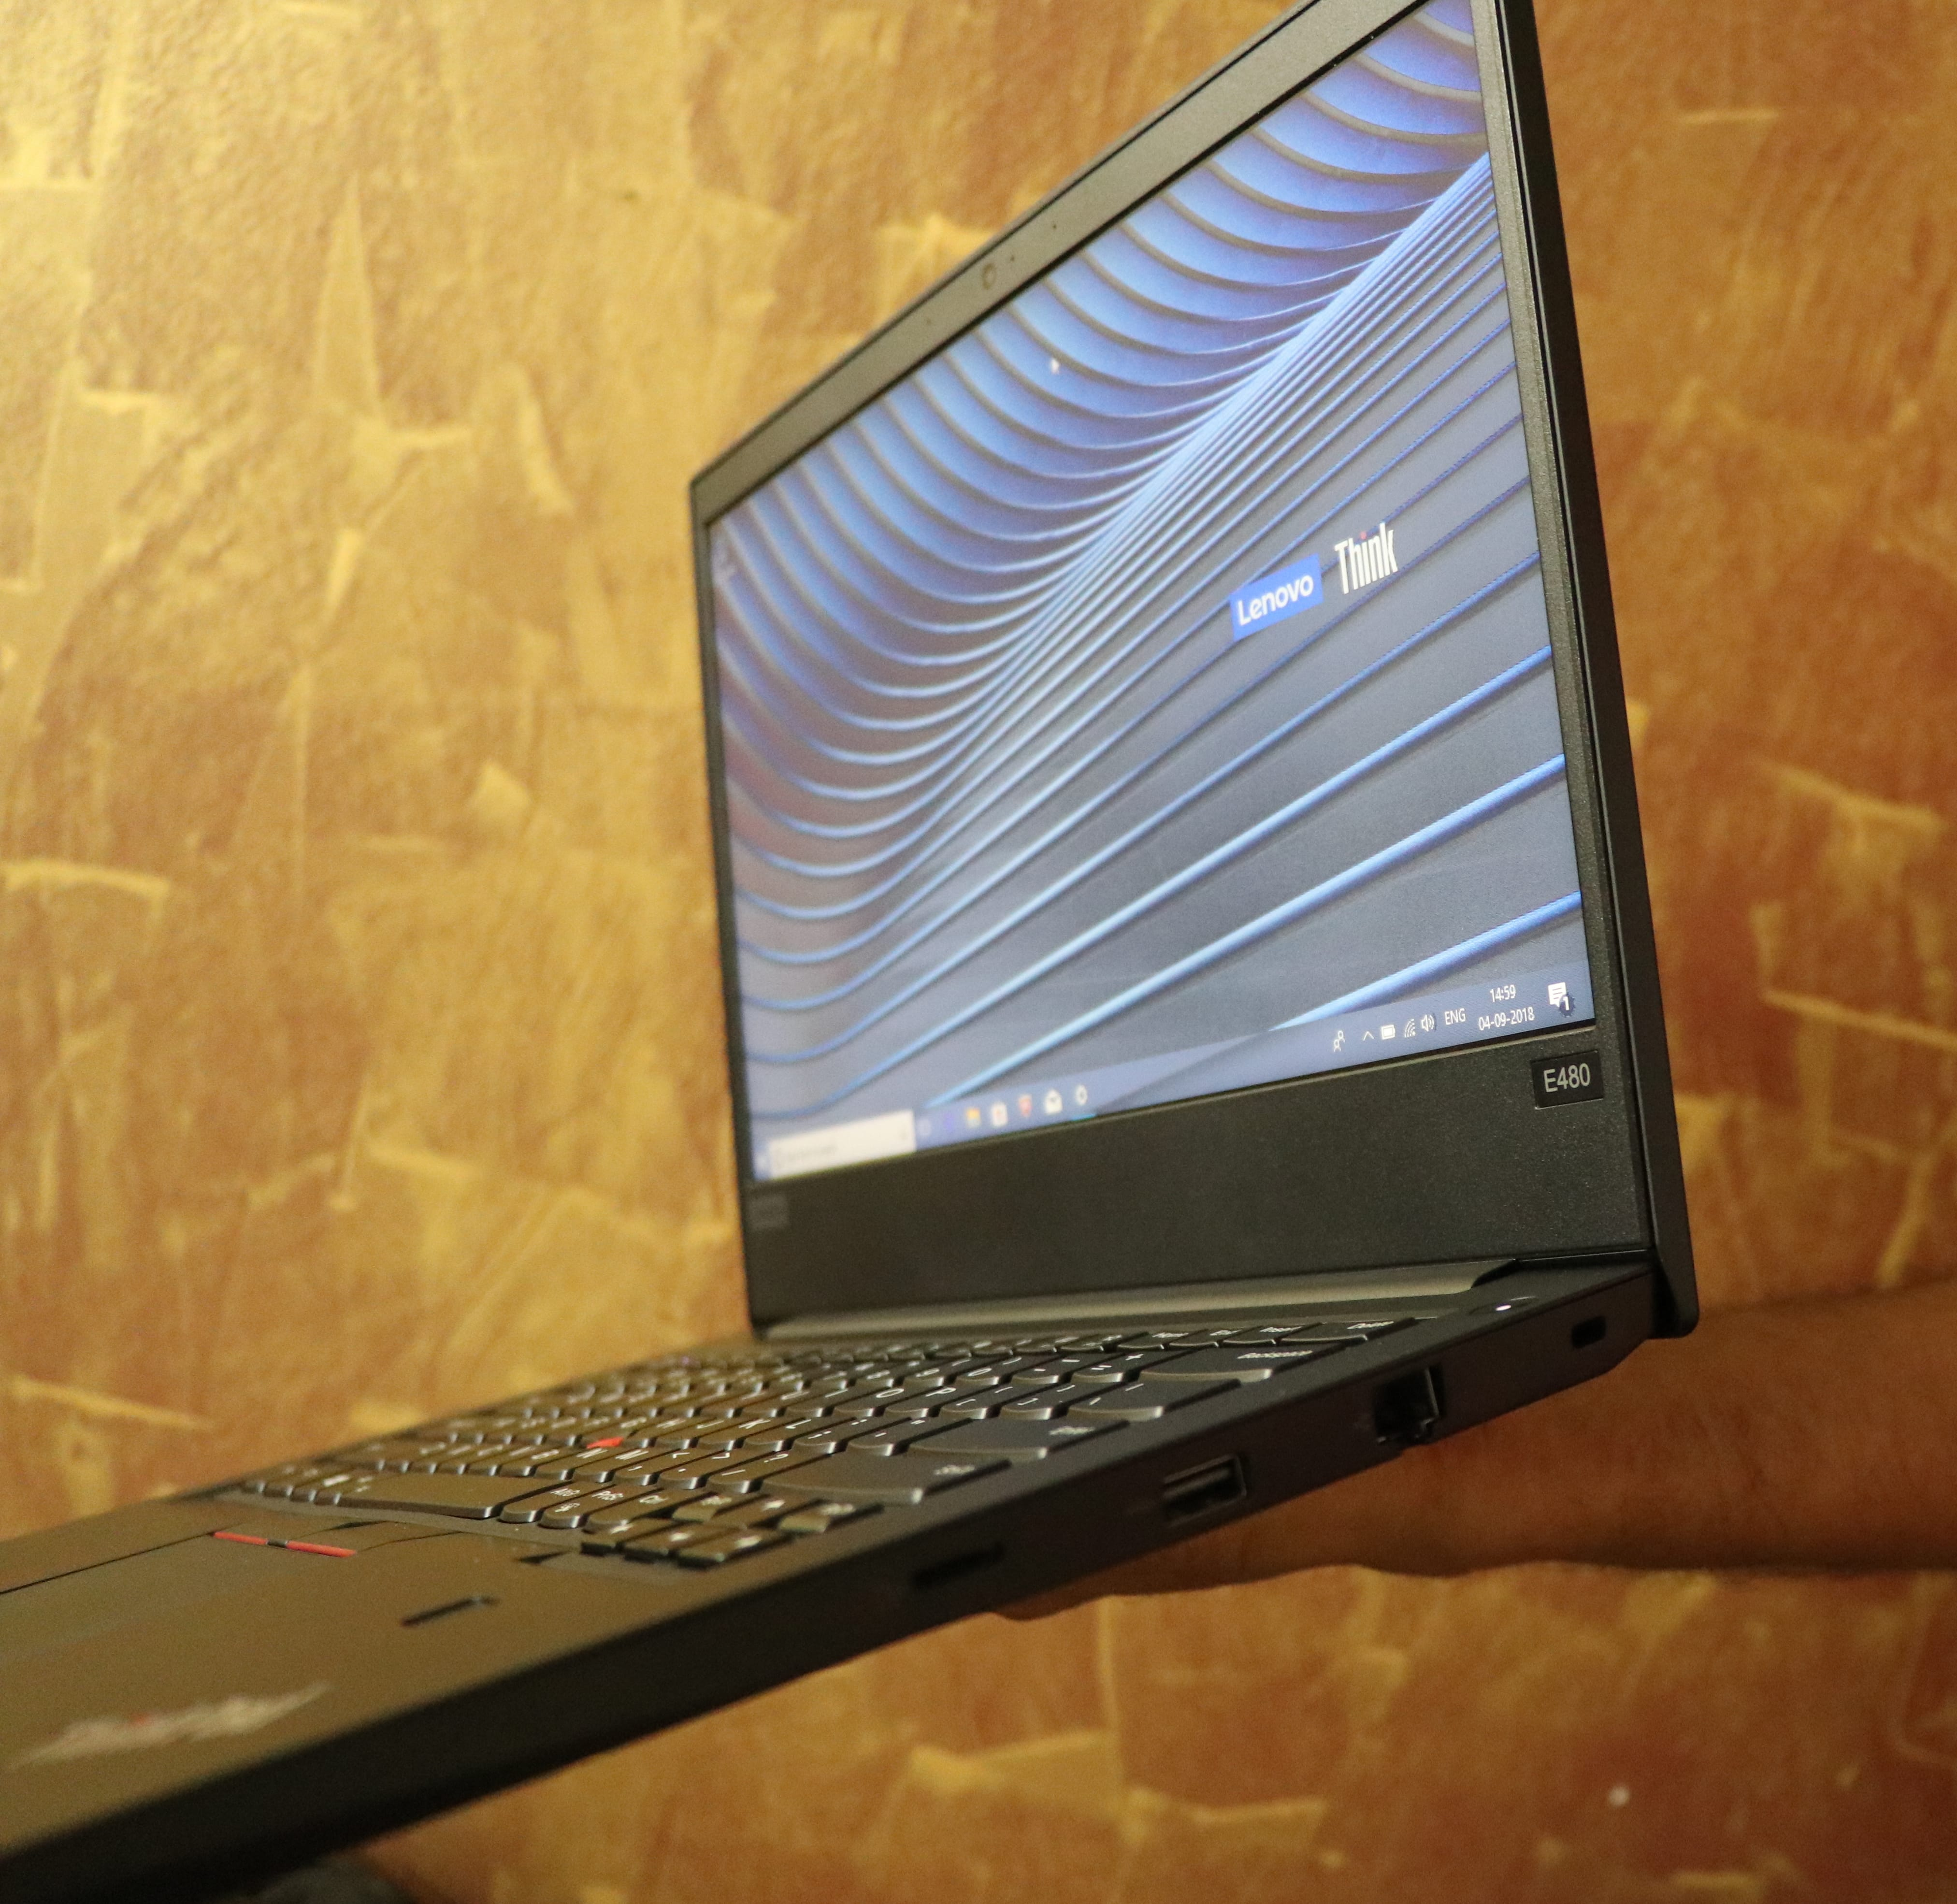 Lenovo ThinkPad E480: First Impression - GizmoManiacs